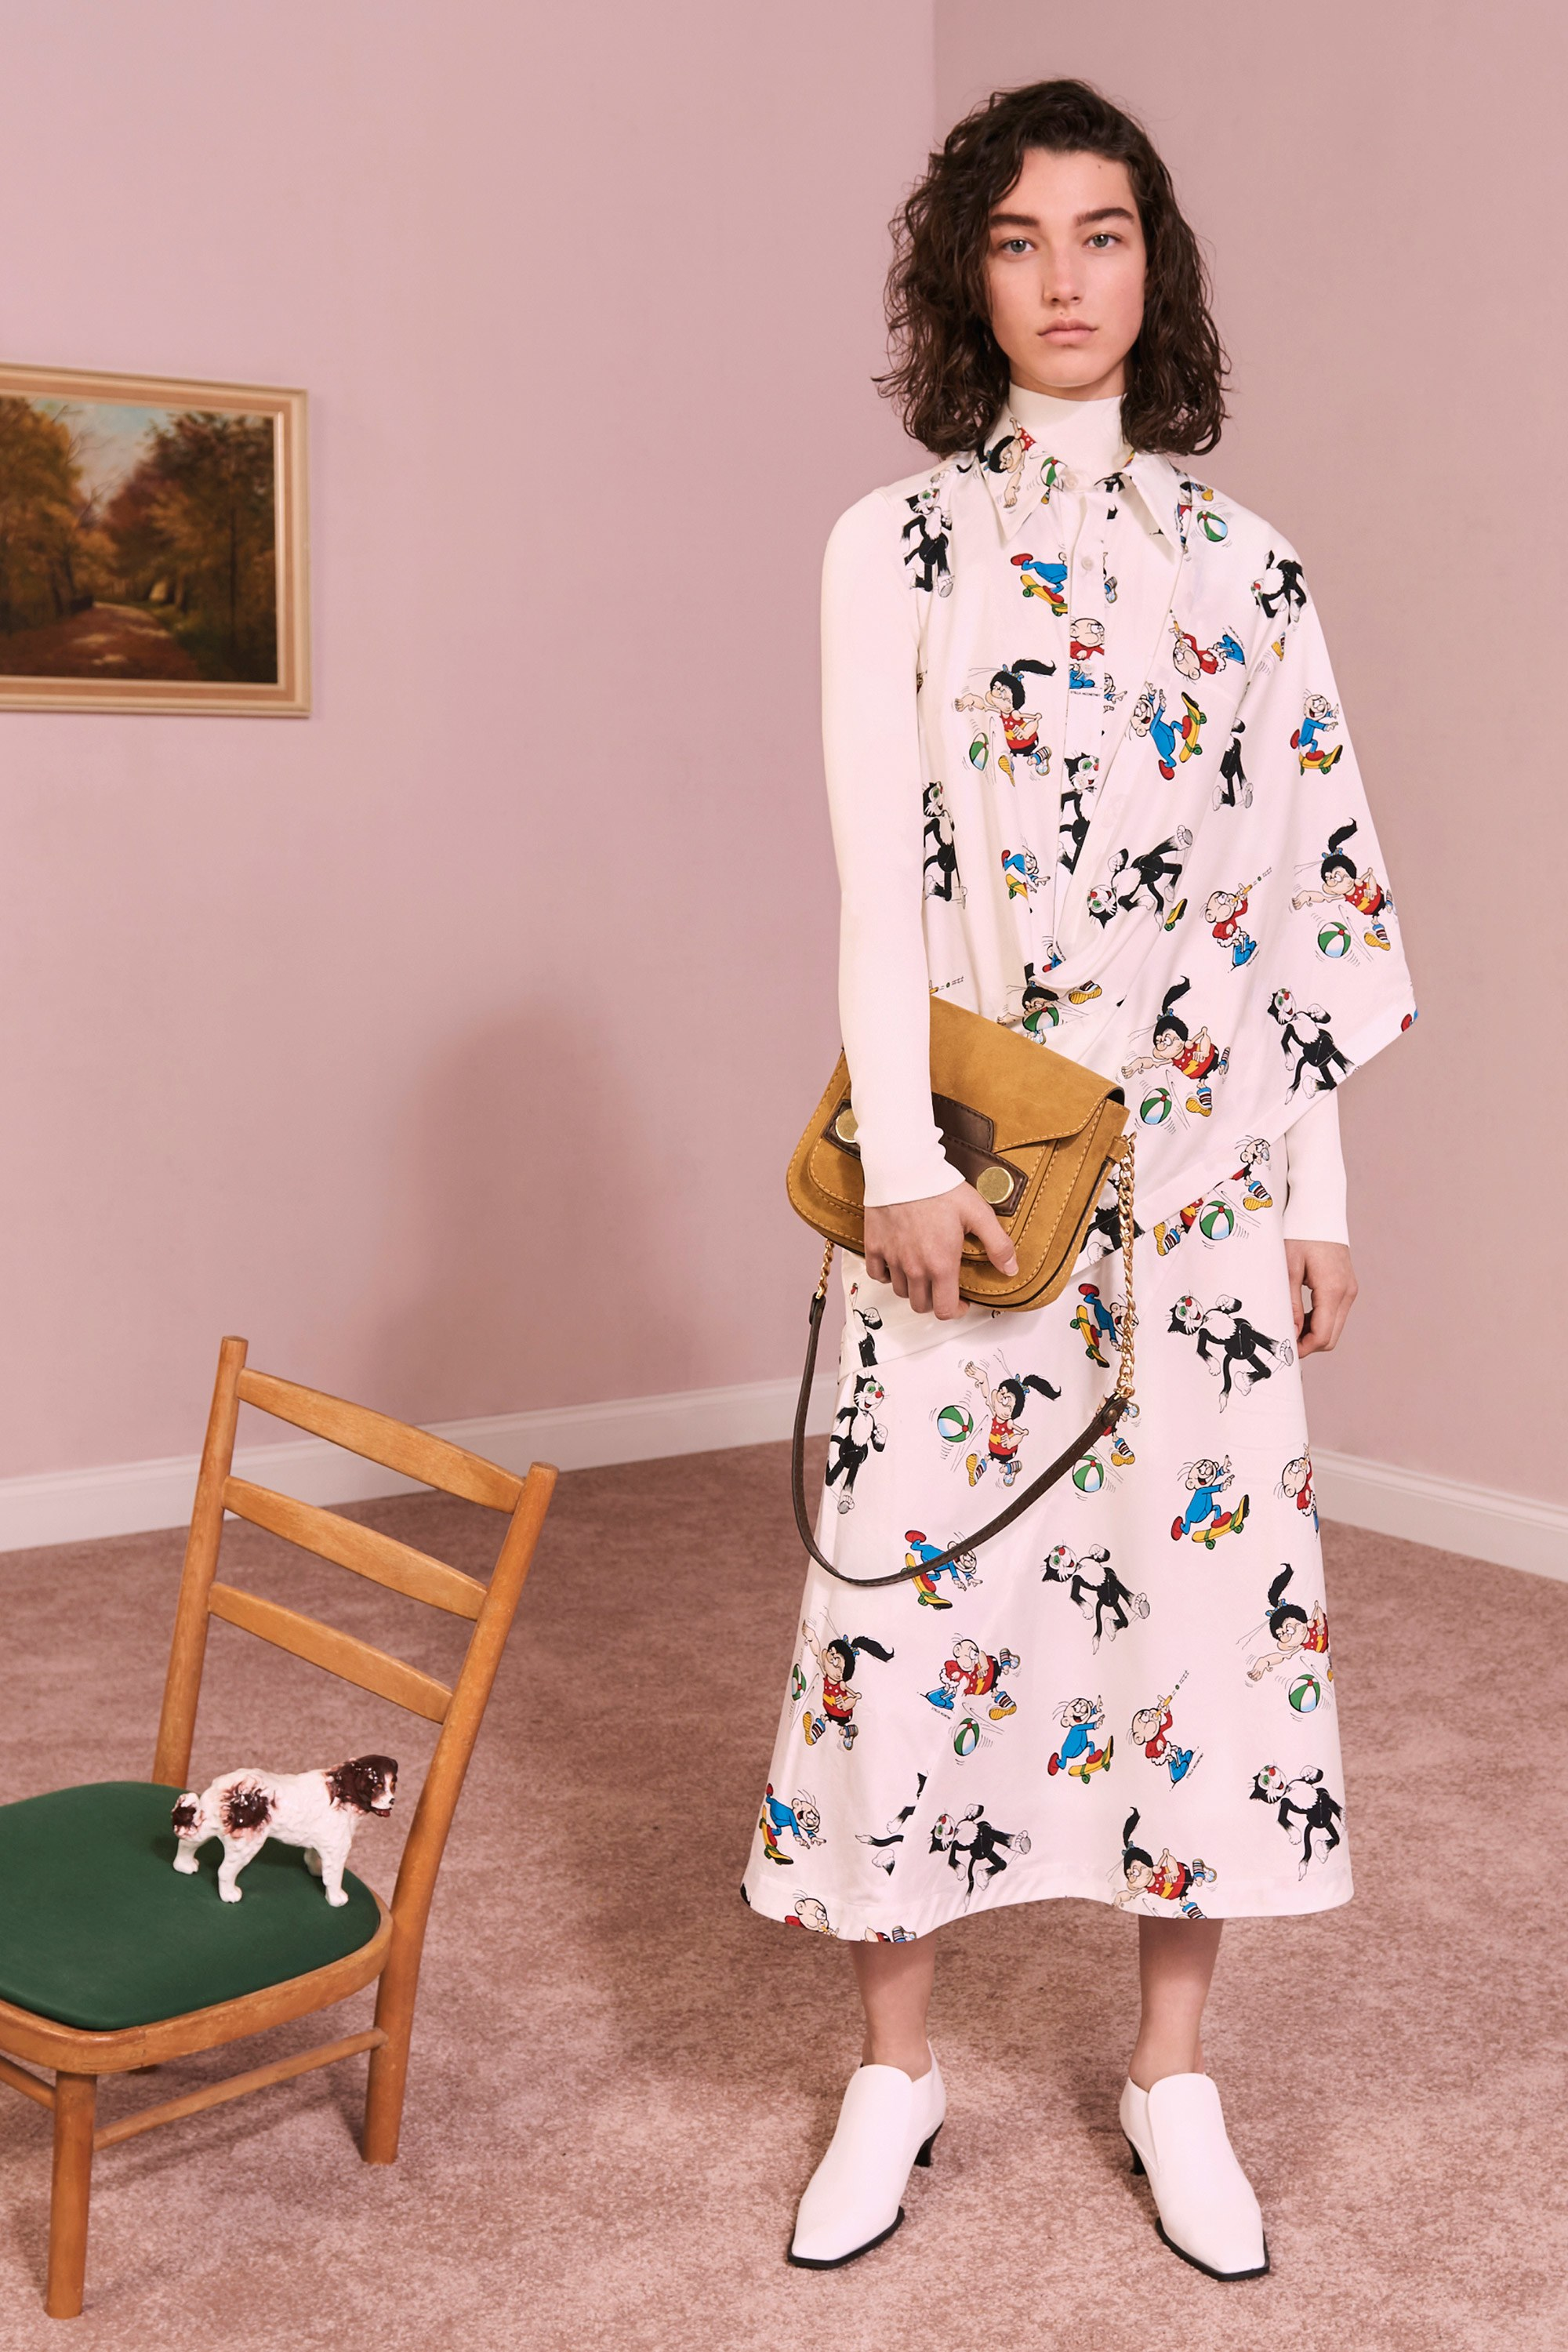 4-stella-mccartney-pre-fall-2017.jpg